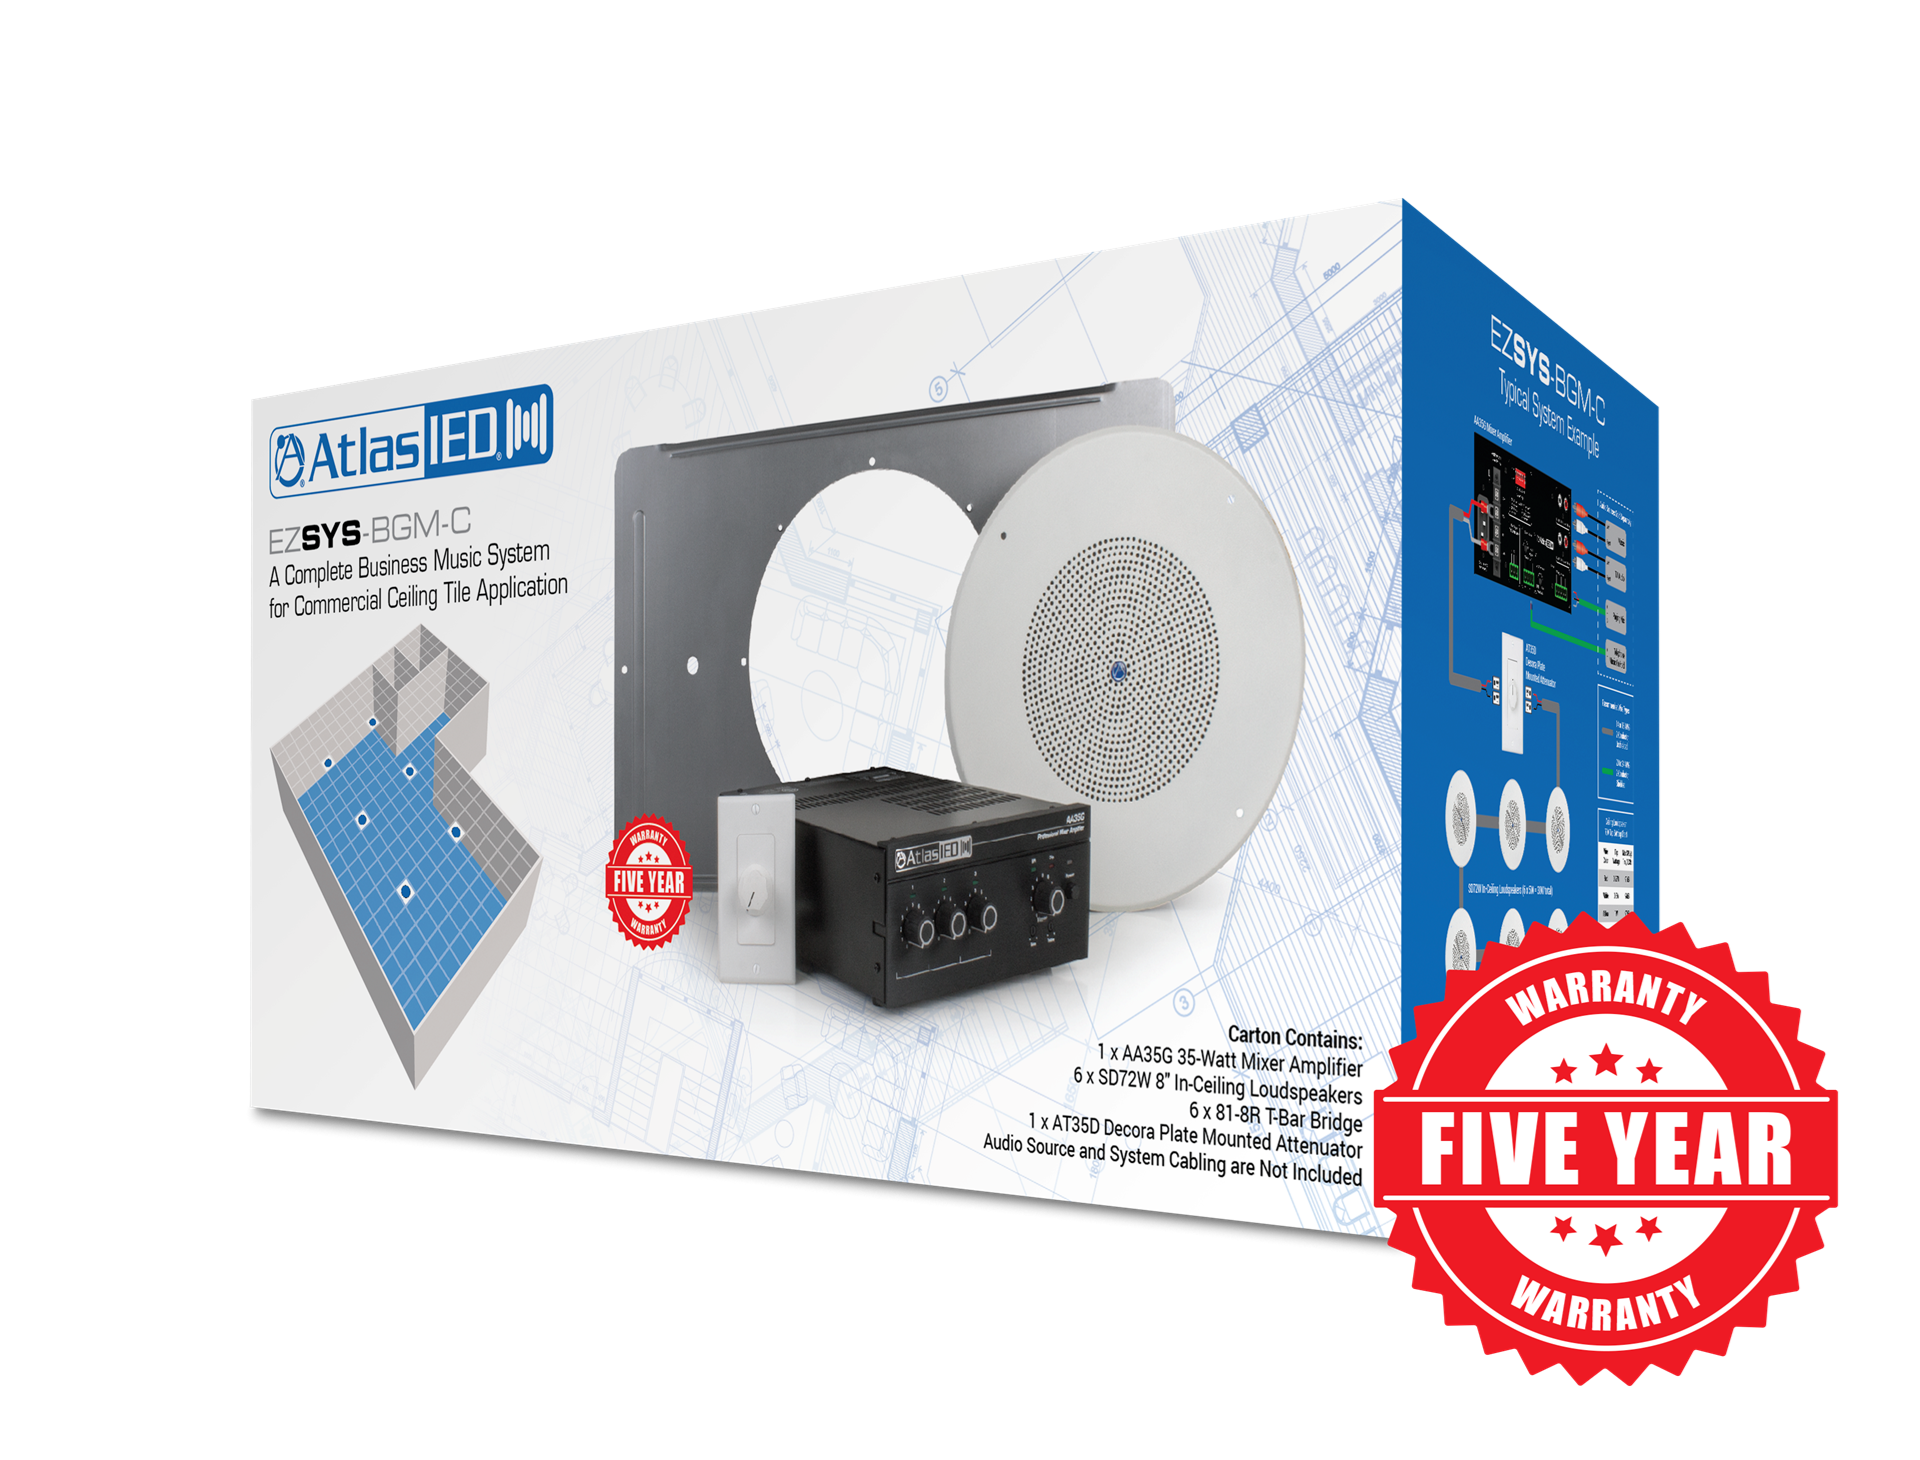 0025172_complete business music paging system for ceiling tile applications with wall level controller a complete business music & paging system for ceiling tile